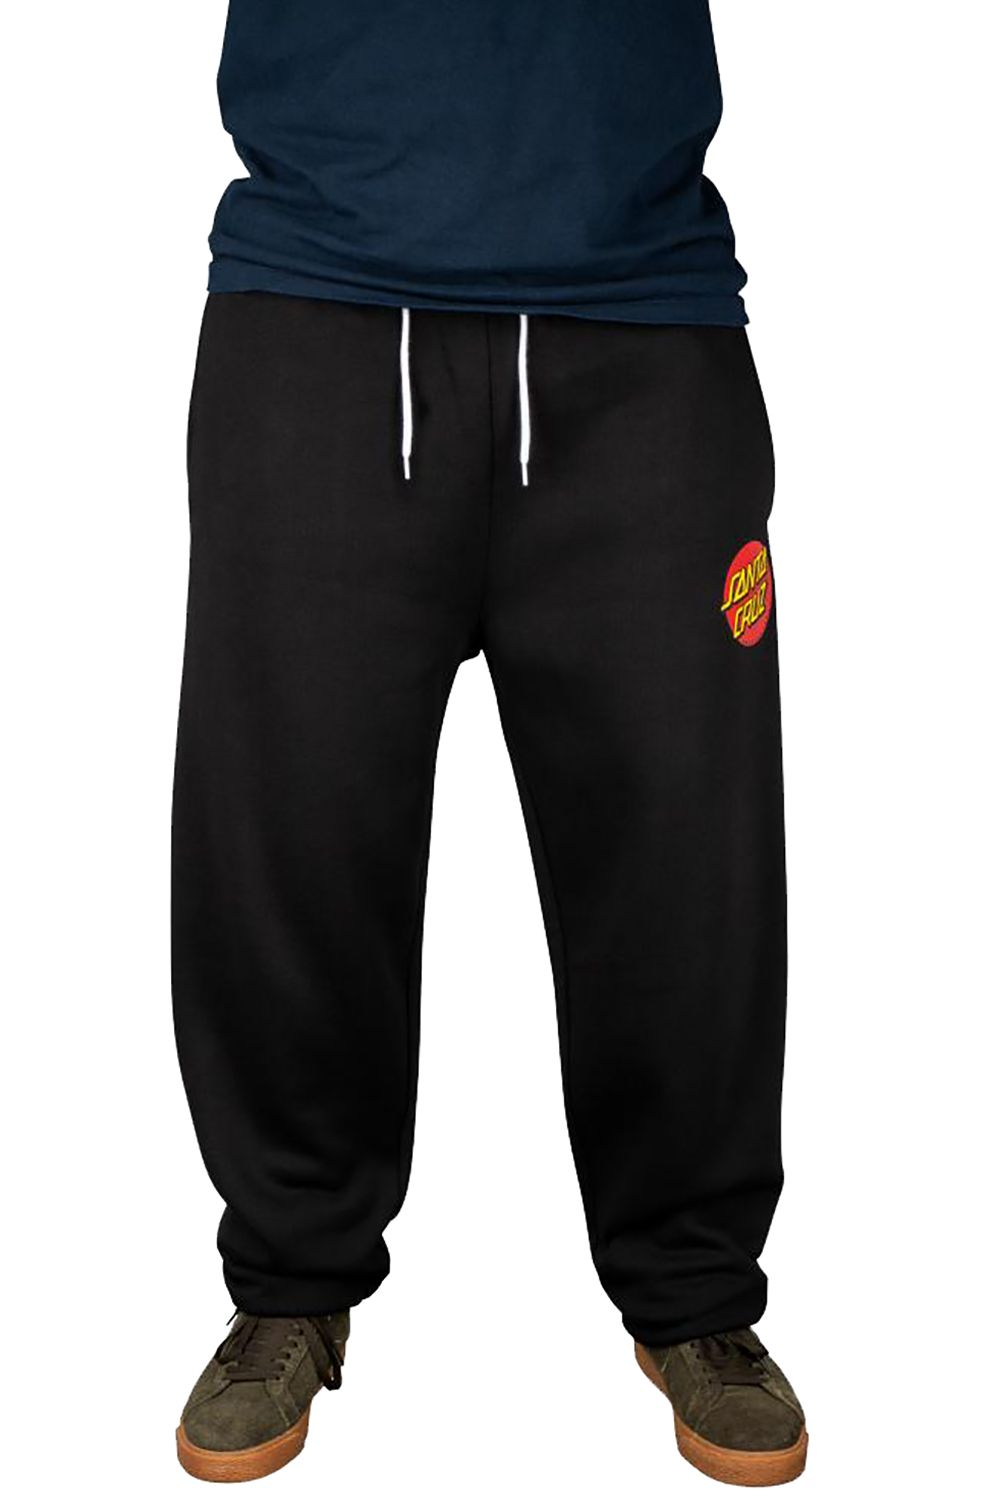 Santa Cruz Pants CLASSIC DOT SWEATPANT Black